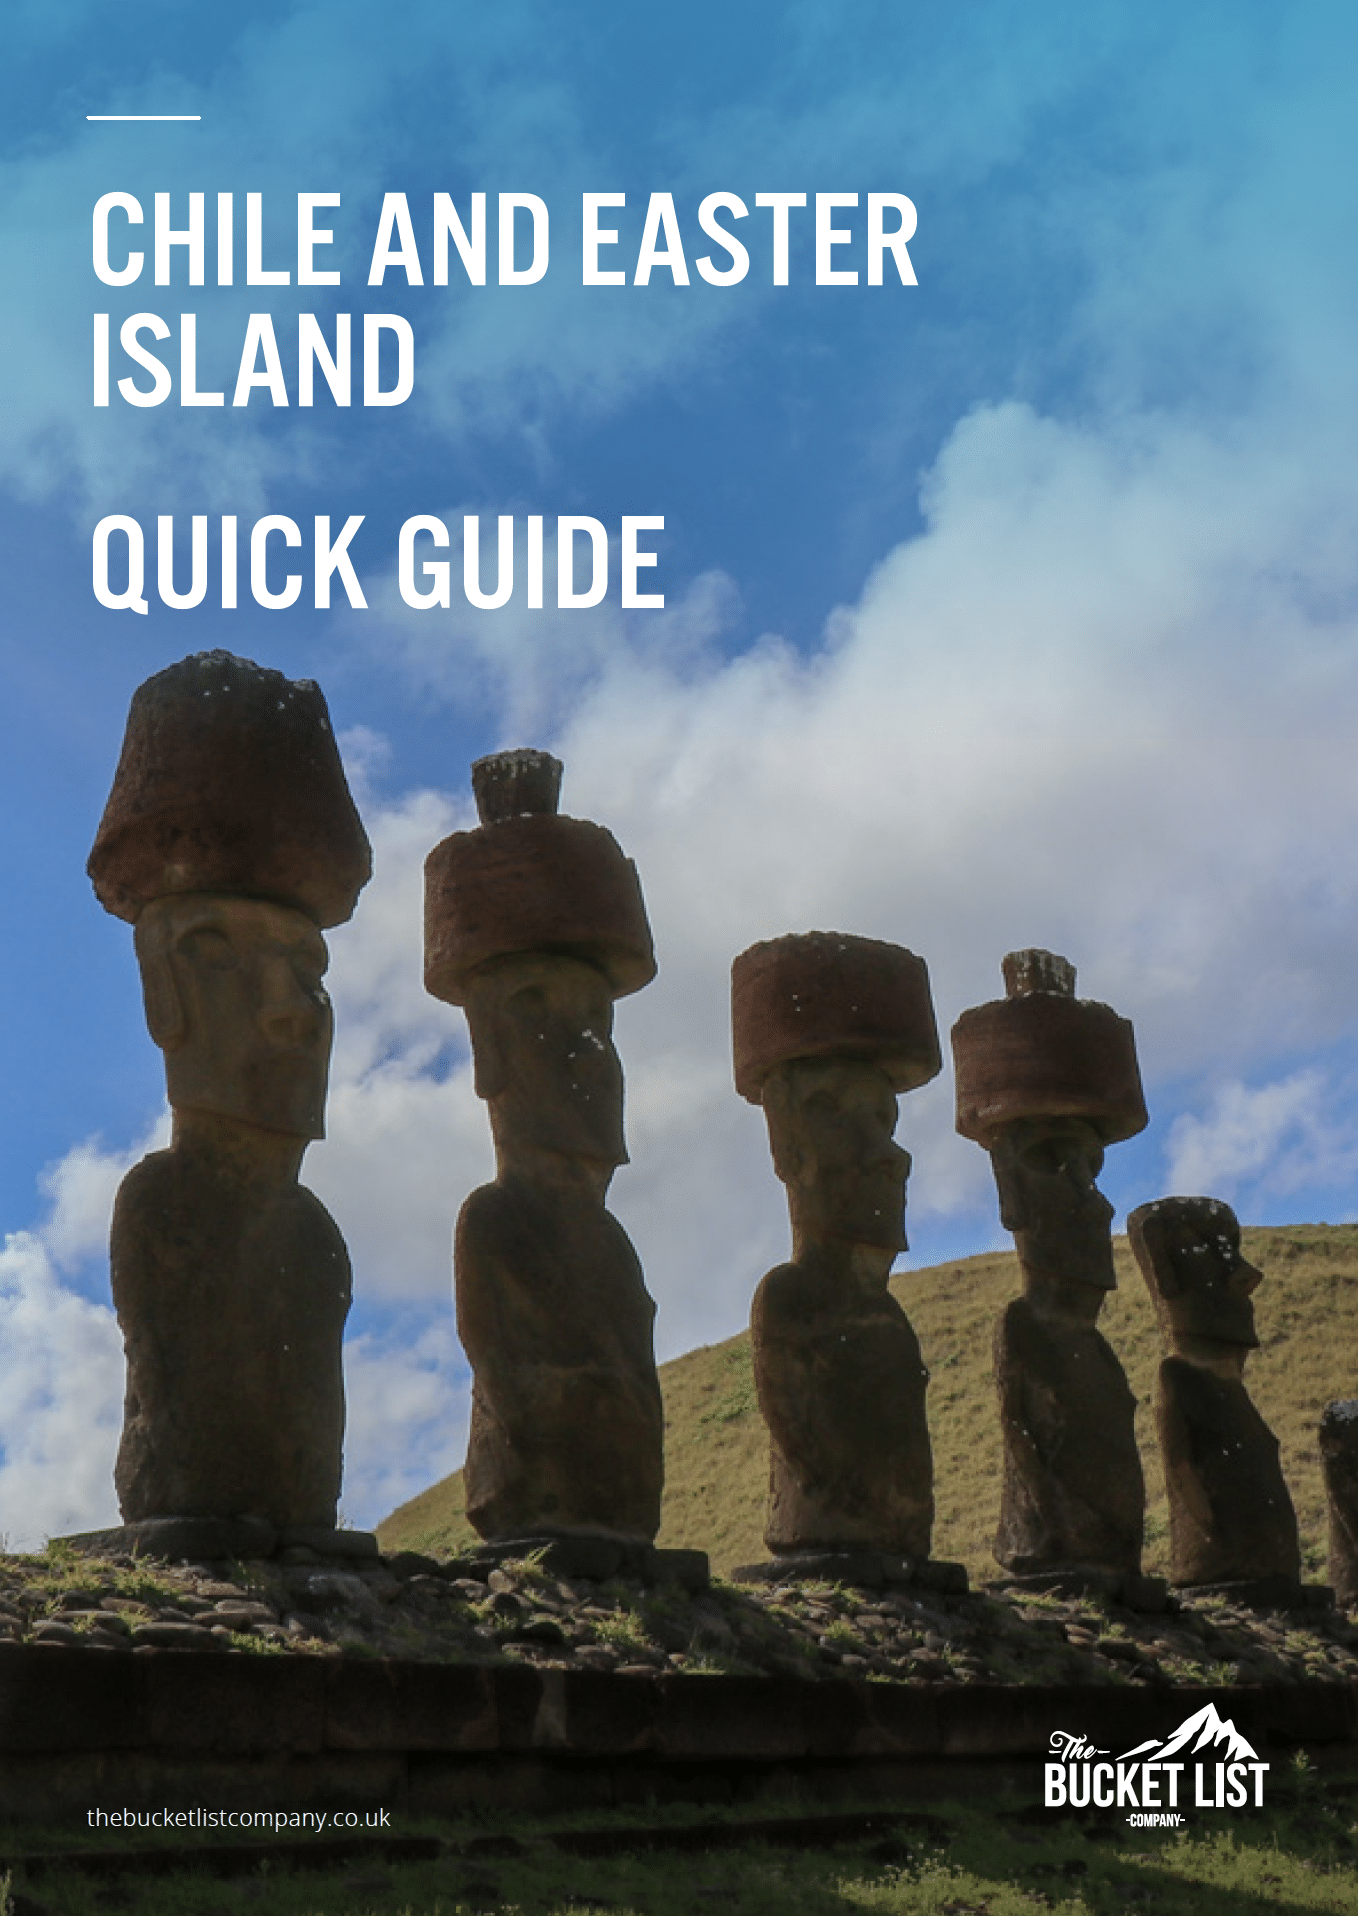 Chile and Easter Island Free Guide